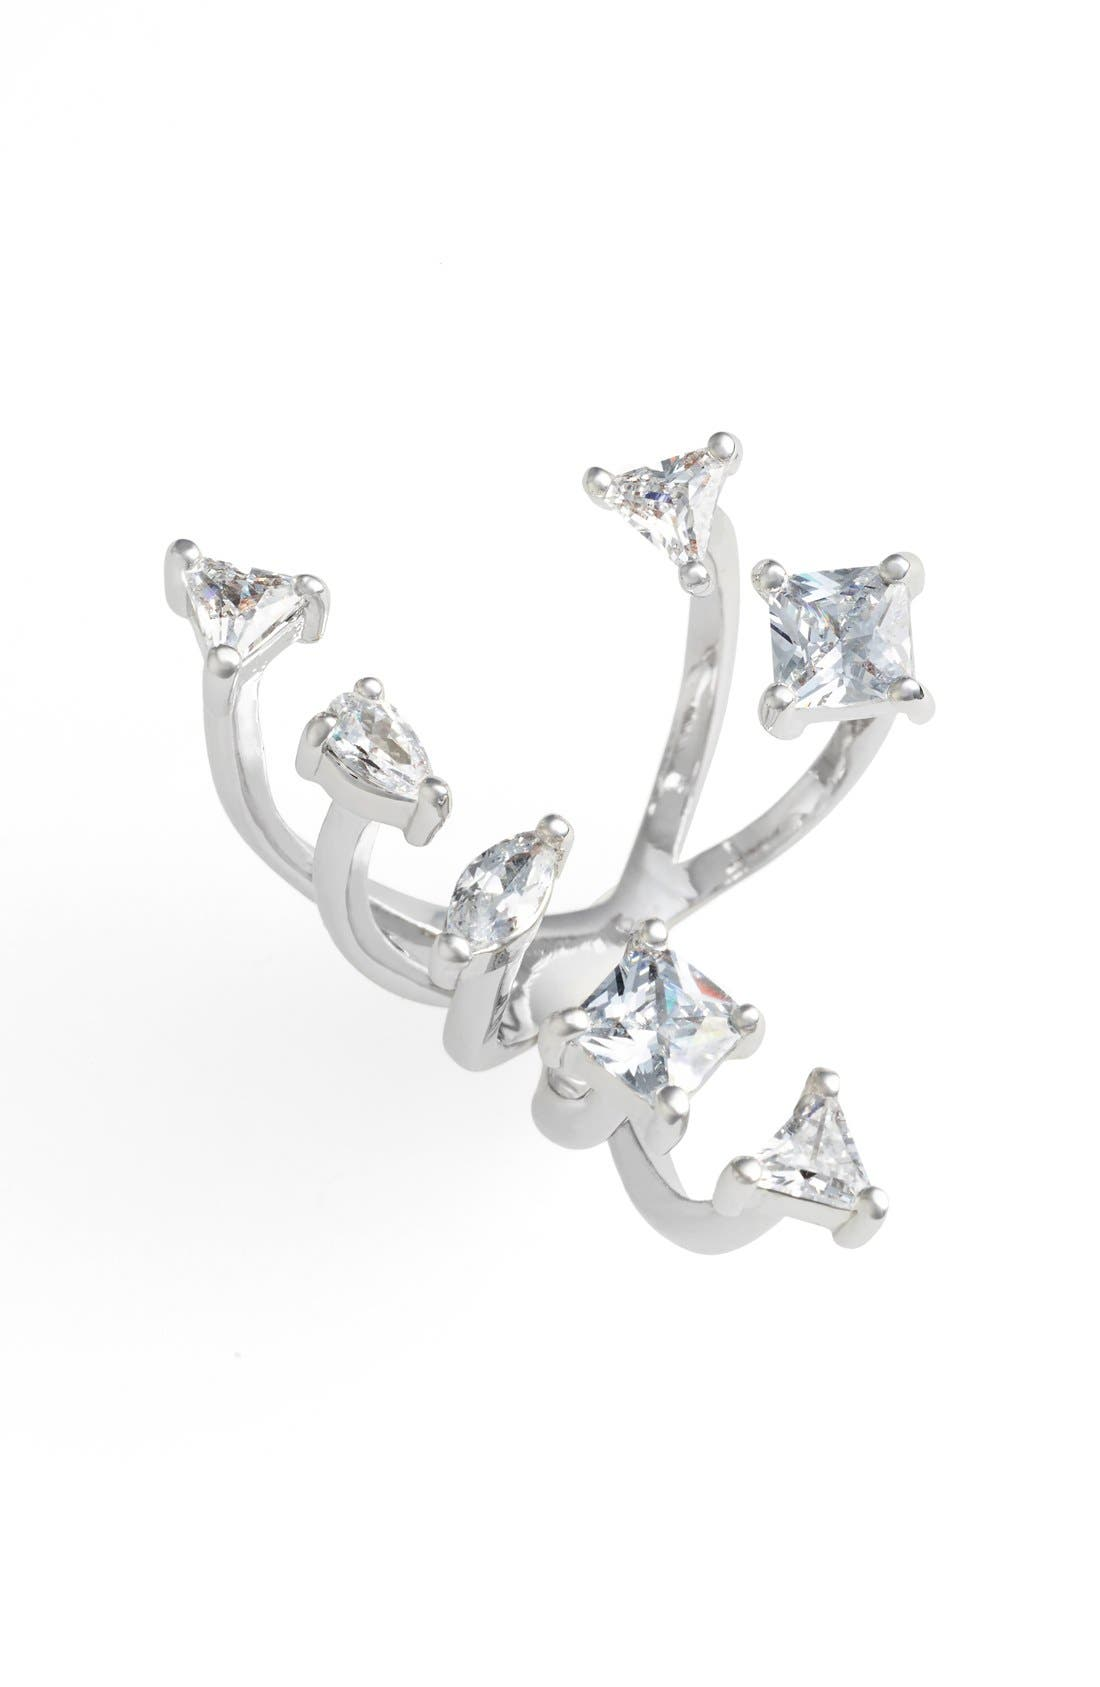 Alternate Image 1 Selected - CZ by Kenneth Jay Lane Asymmetrical Cubic Zirconia Open Ring